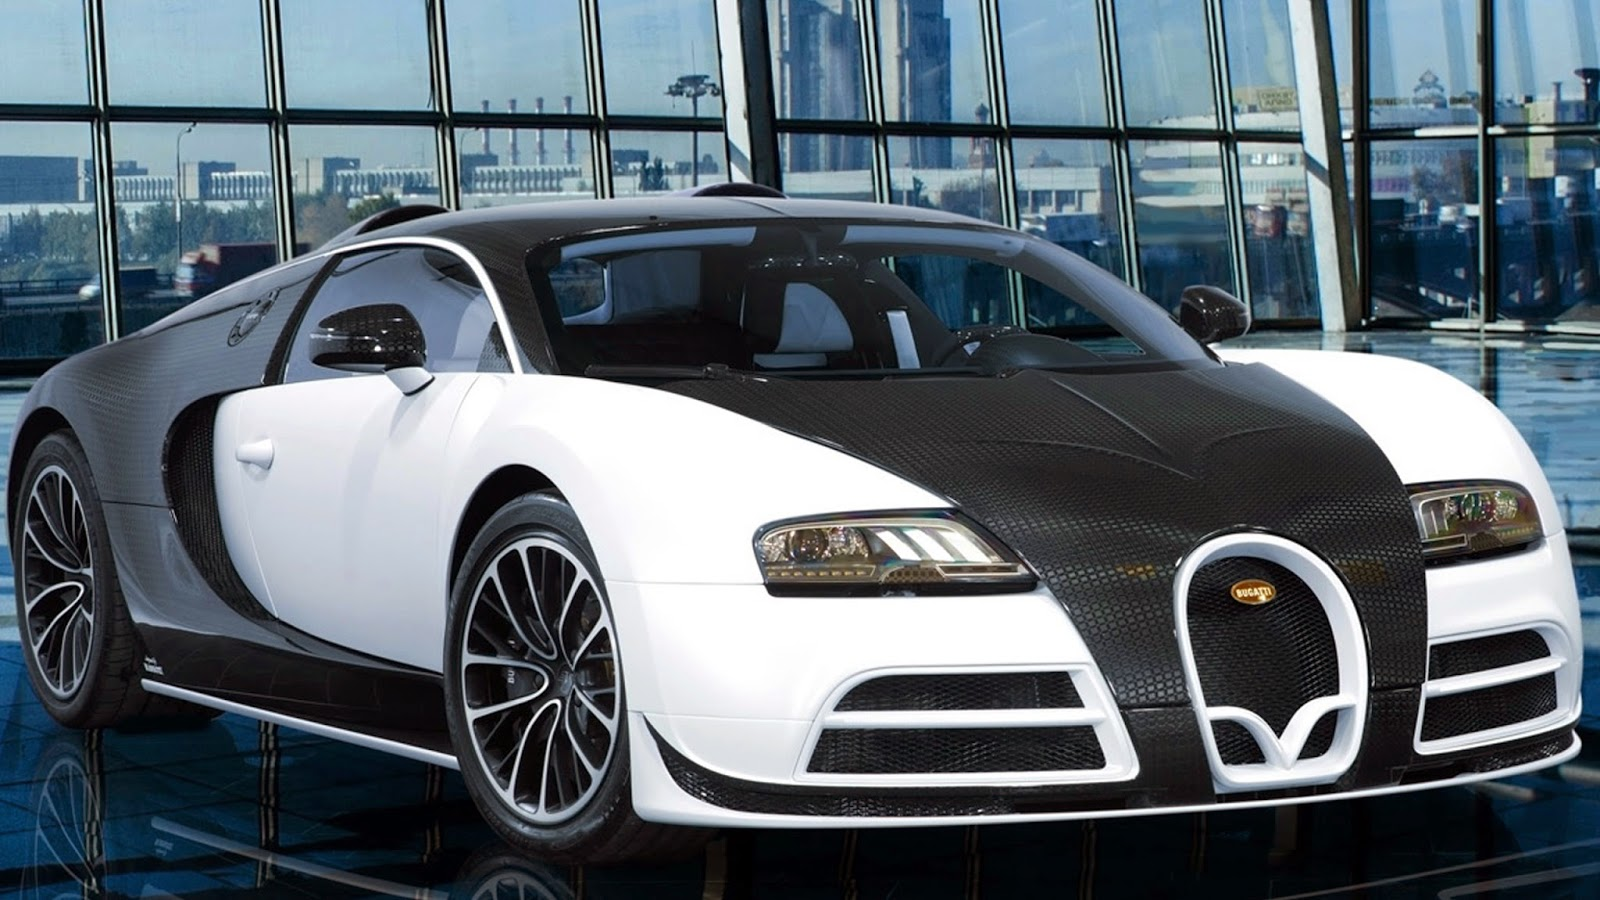 Mansory Are Adding To Their Modified Bugatti Veyron   Range With The Vivere After The Exclusive Luxury Car Specialists